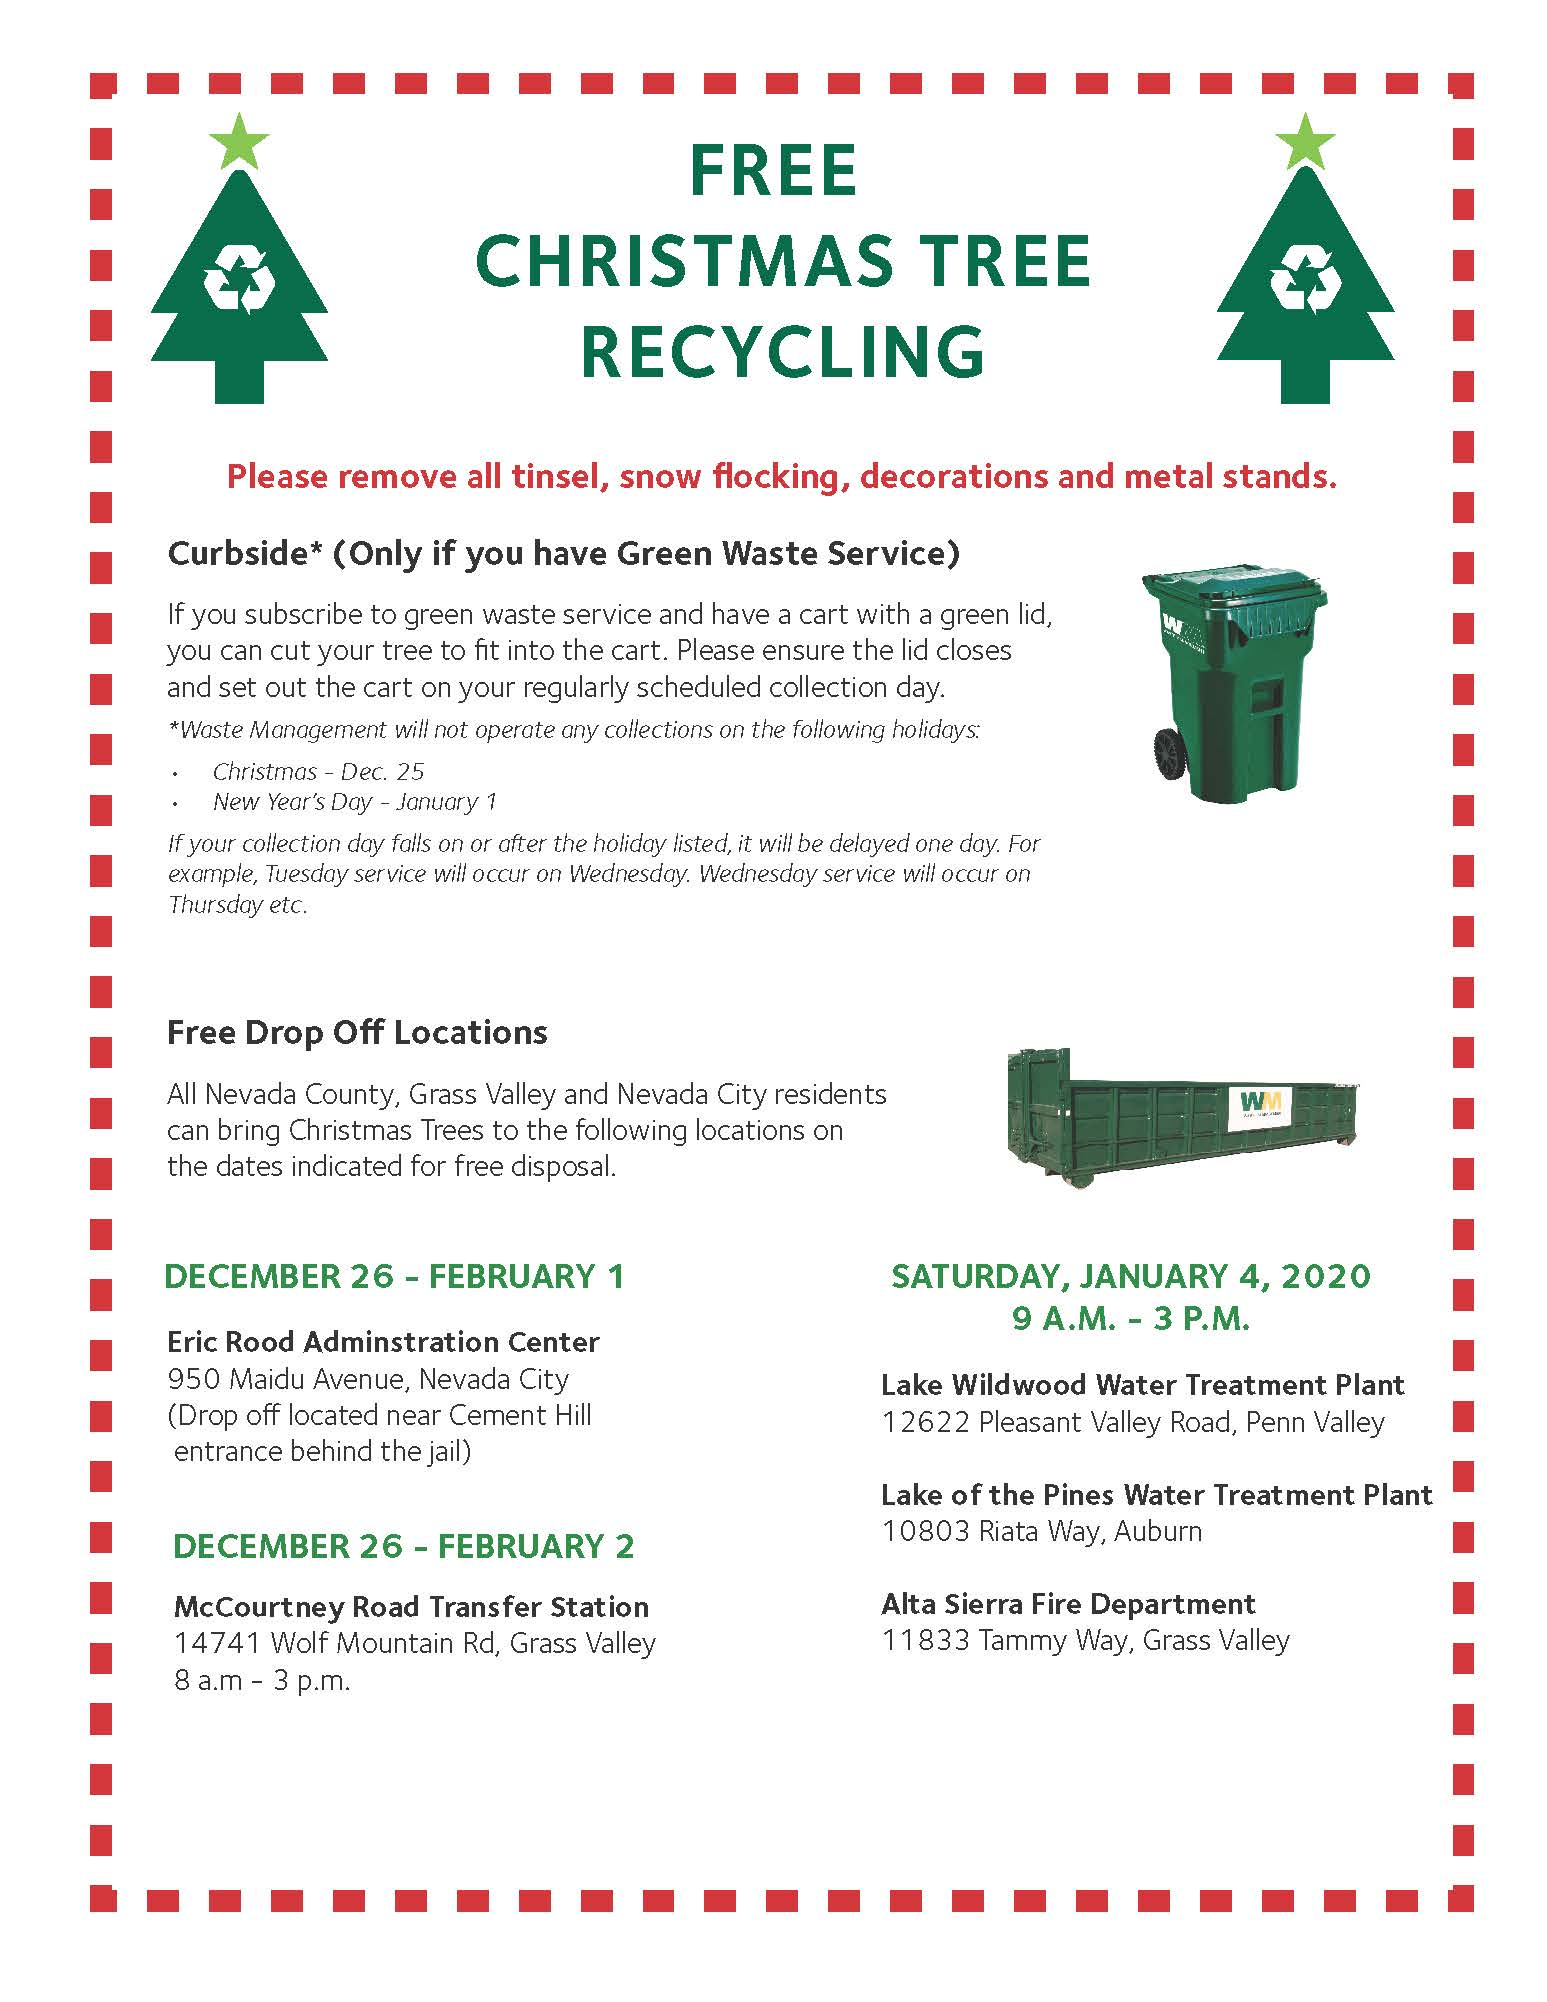 Nevada County Christmas Tree Recycling Times And Locations Yubanet